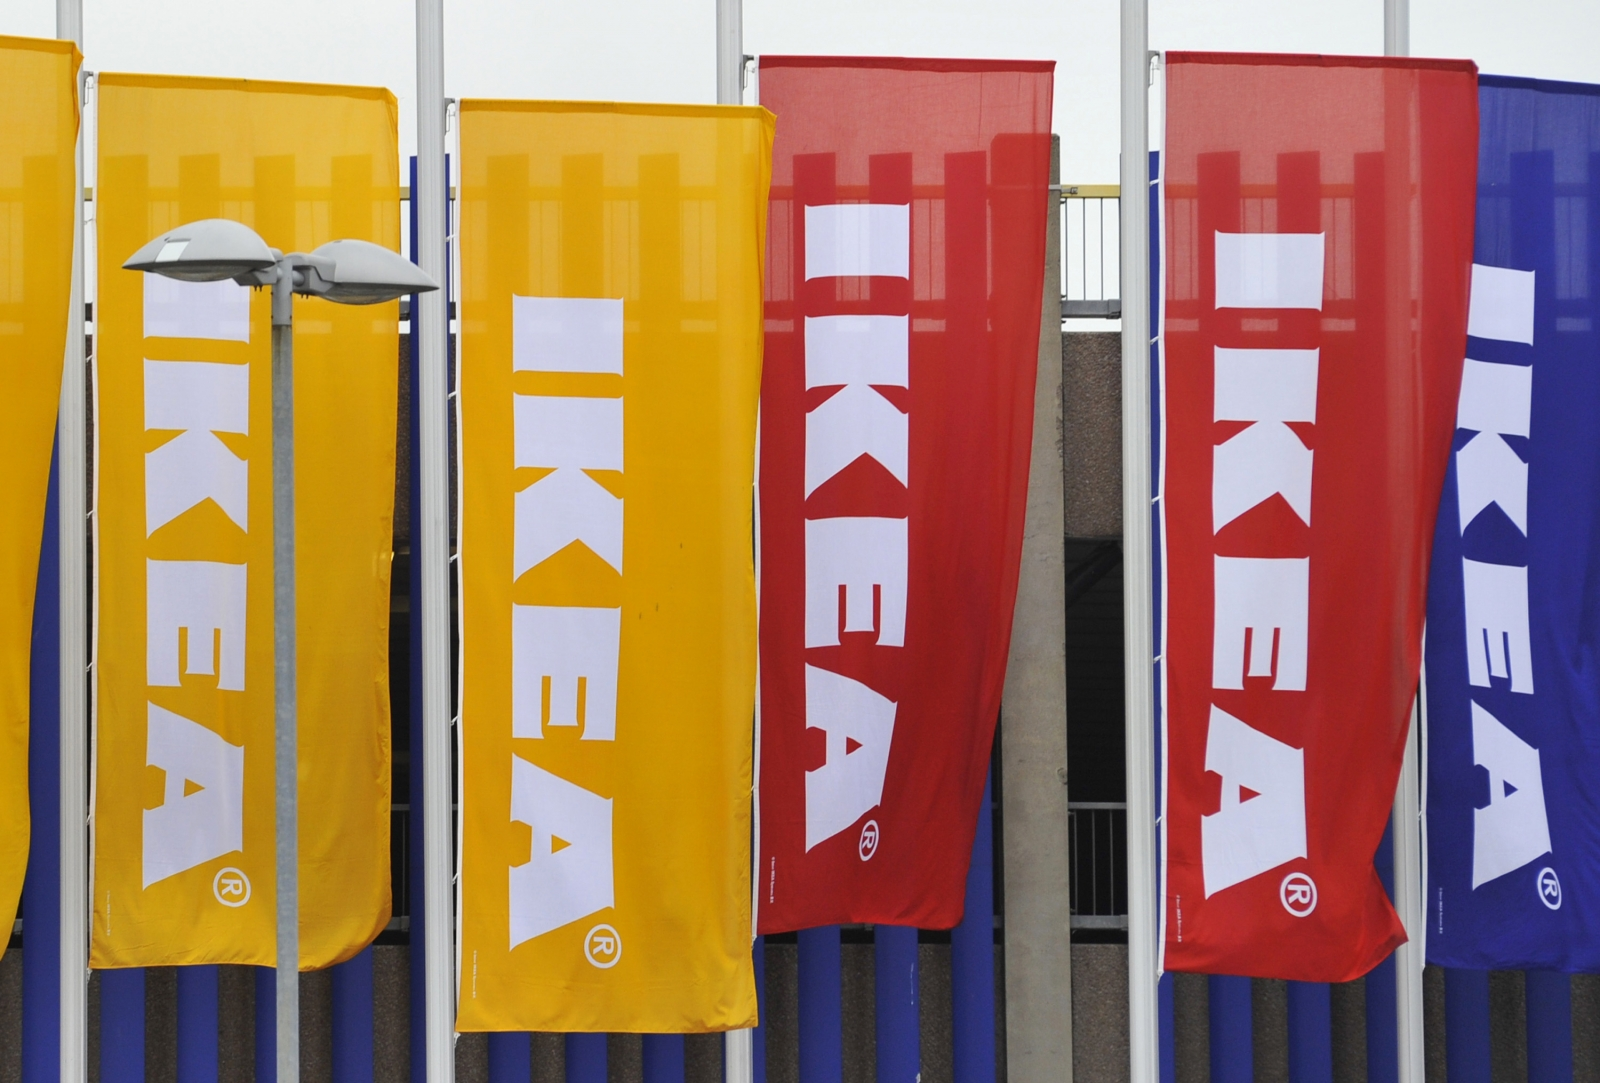 Ikea Co Worker Uk Ikea Workers Get Early Christmas Present With 10% Bonus